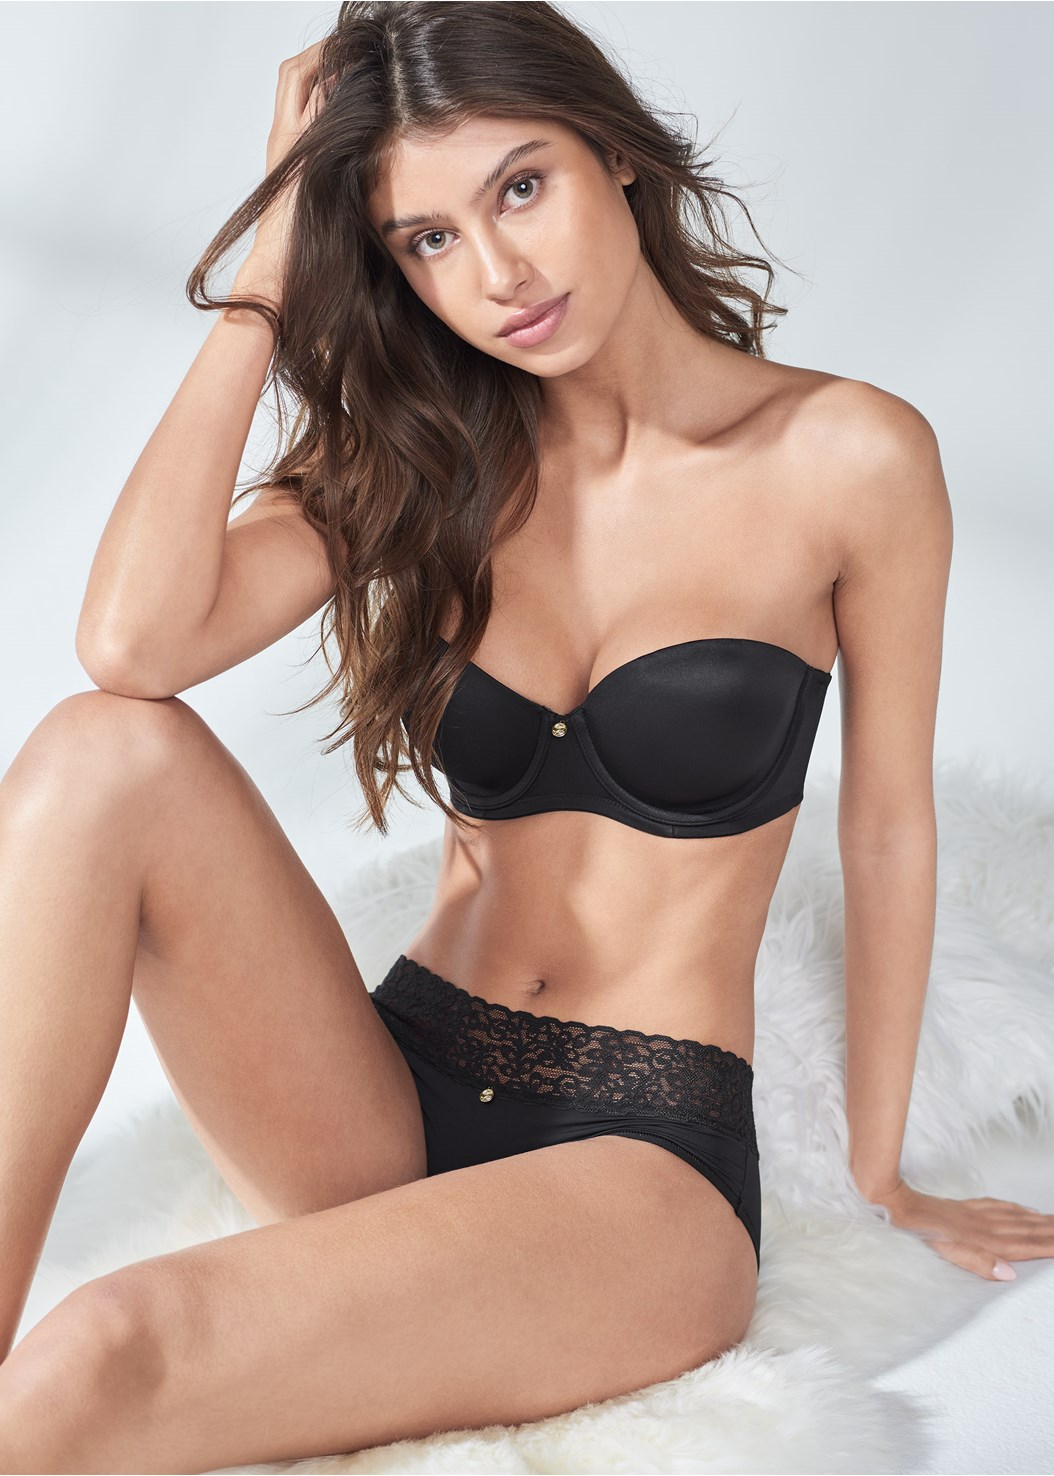 Pearl™ By Venus Strapless Bra,Pearl™ By Venus Lace Trim Hipster 3 Pack,Pearl™ By Venus All Over Lace Thong 3 Pack,Pearl™ By Venus Strappy Bikini 3 Pack,Pearl™ By Venus Retro High Leg Panty 3 Pack